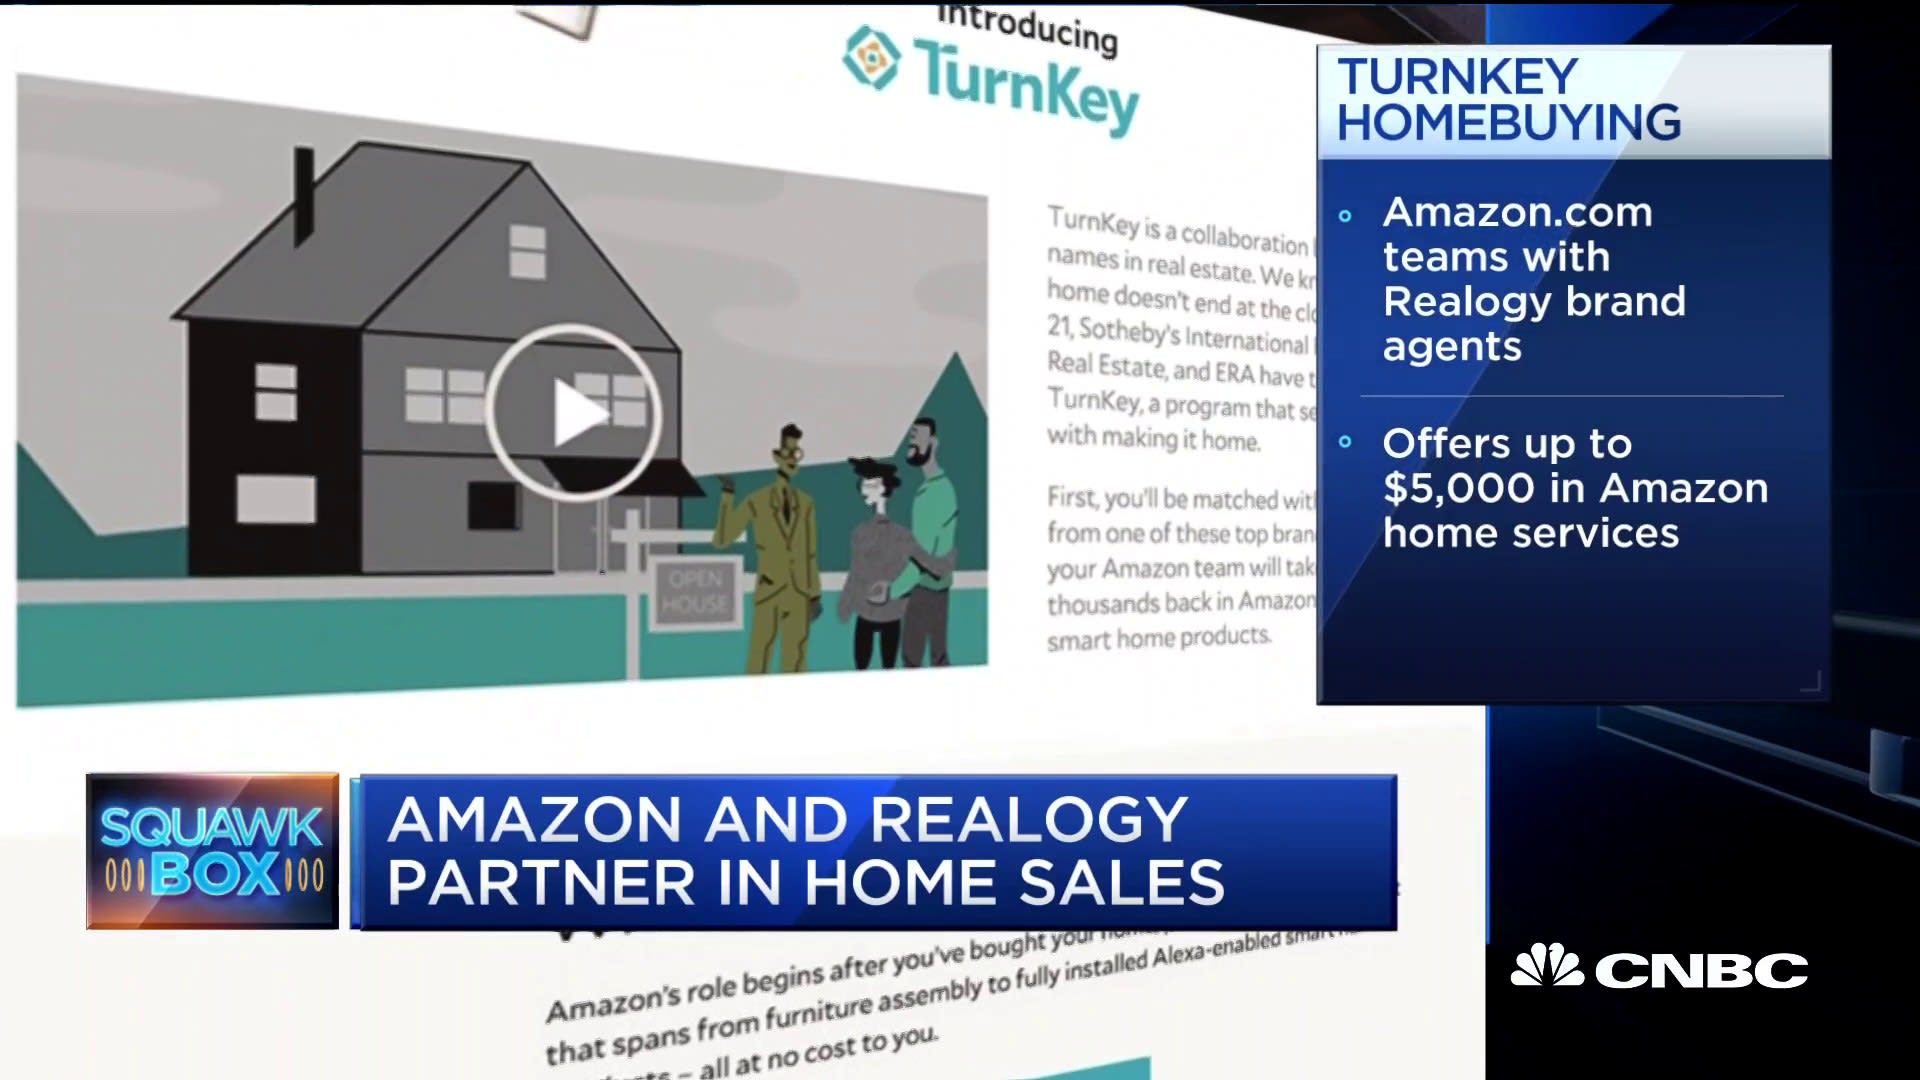 Amazon Turkey Amazon And Realogy Partner In Home Sales